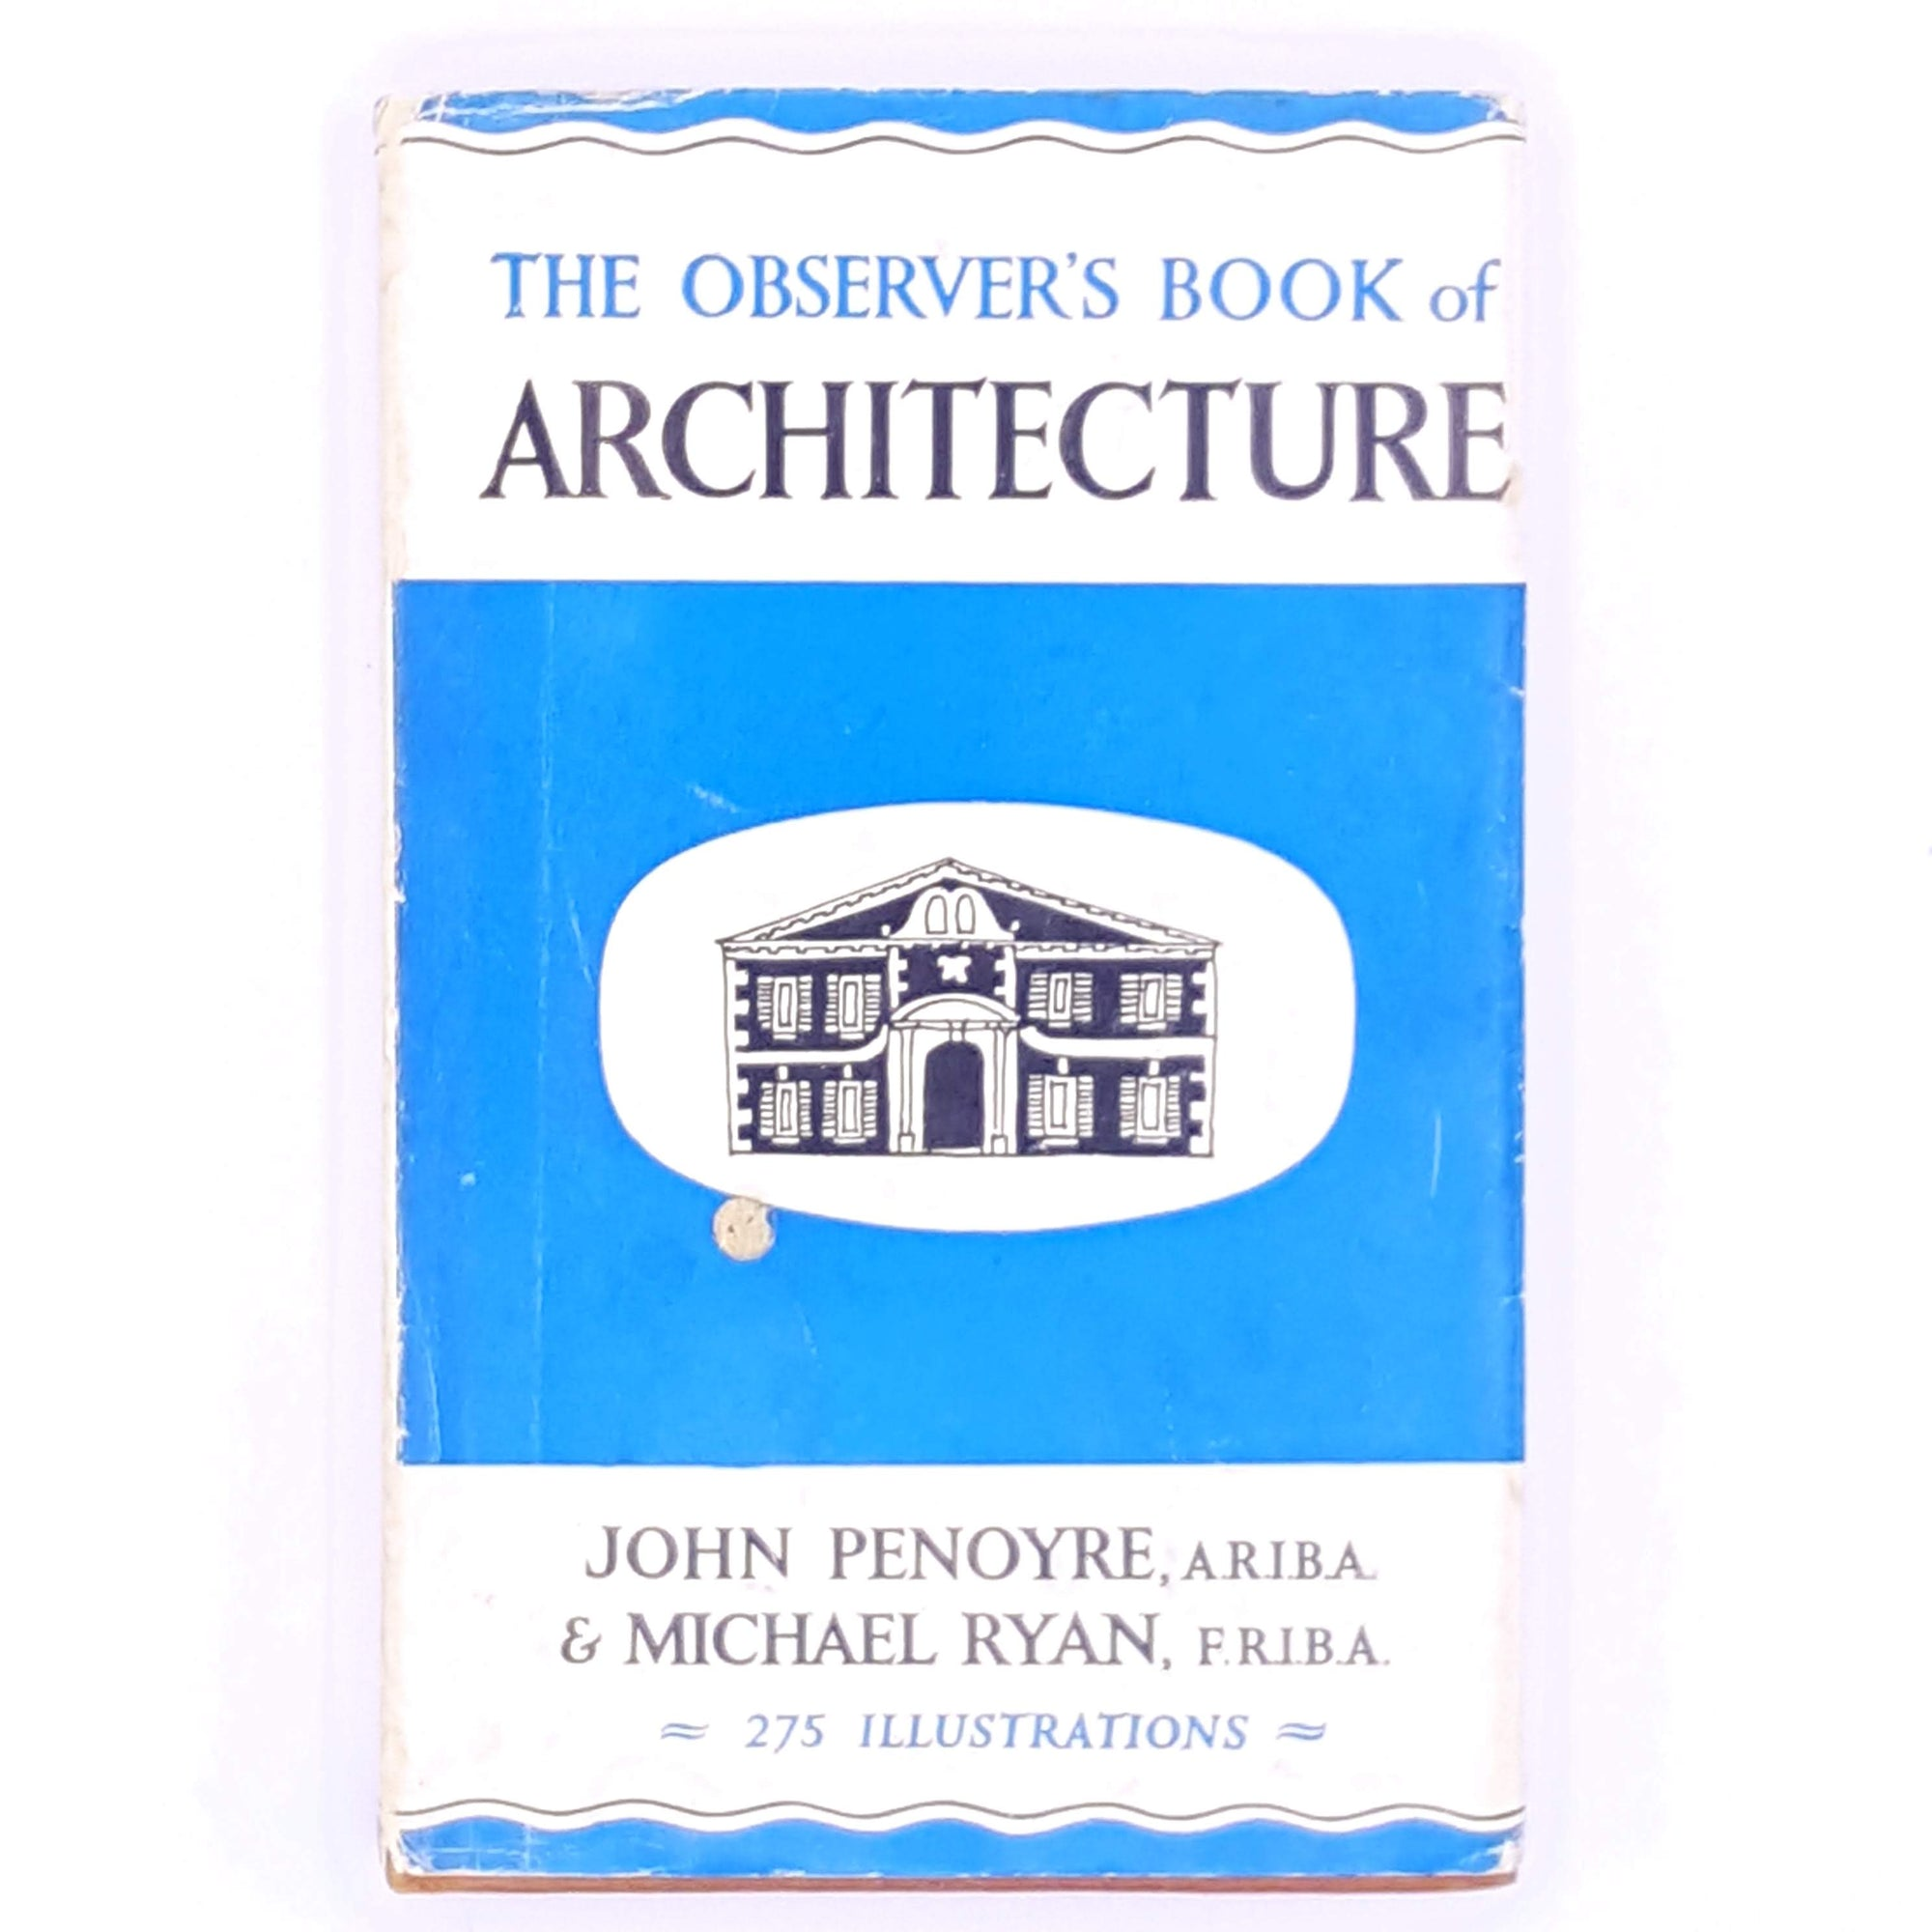 The Observer's Book of Architecture by John Penoyre & Michael Ryan Revised Edition 1970